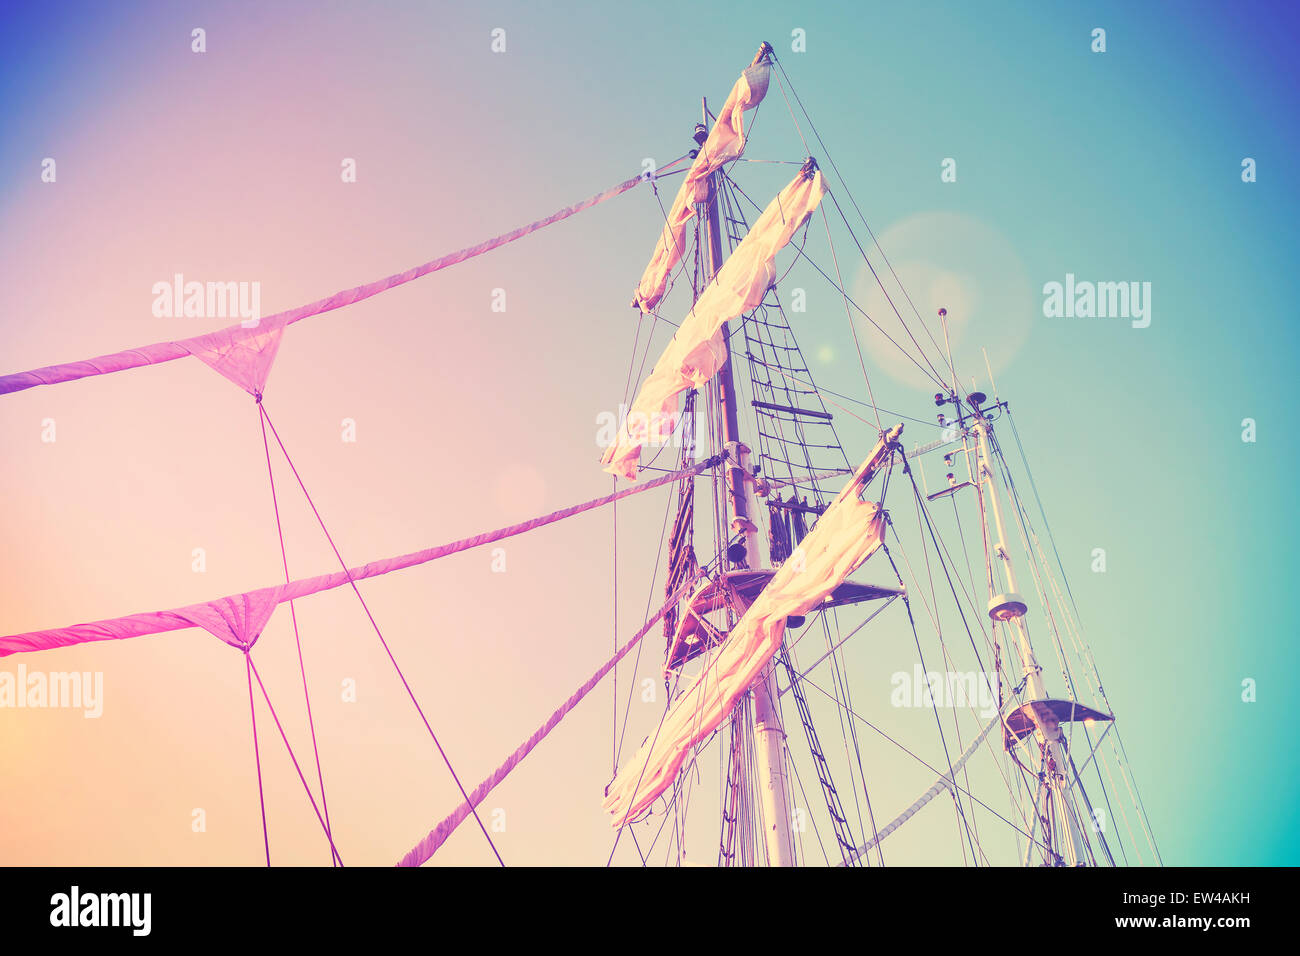 Vintage retro instagram style picture of a sailing ship mast with lens flare effect. - Stock Image